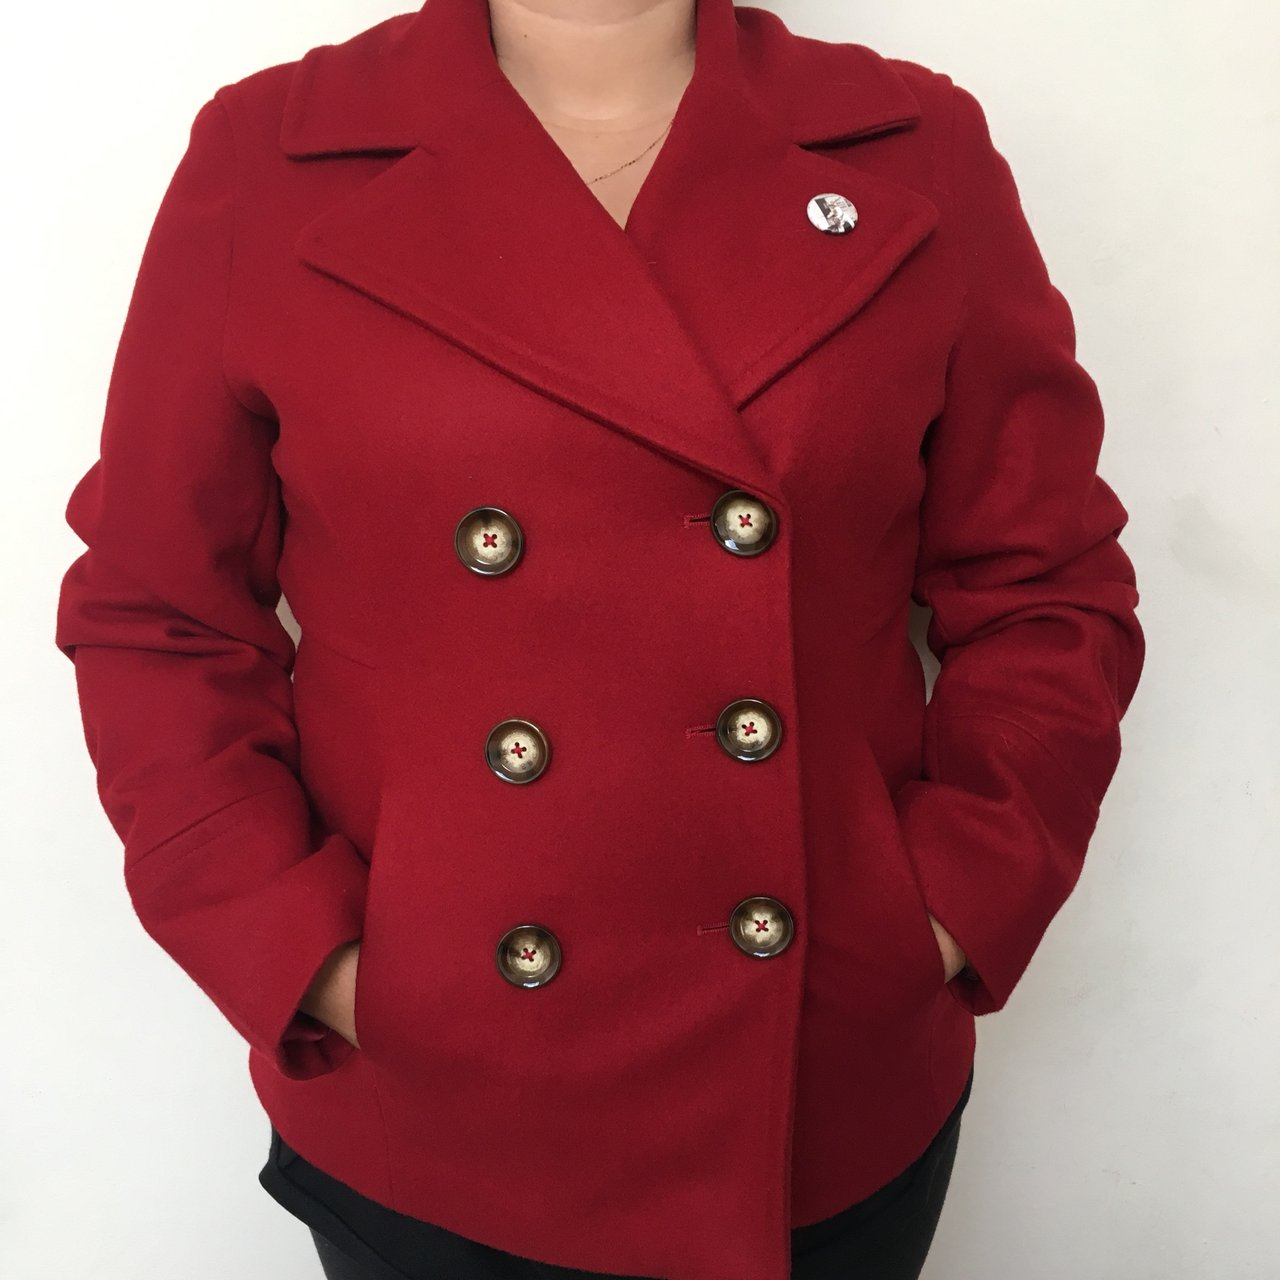 798d4d560b80 Michael Kors Red wool Peacoat. It s that PERFECT red